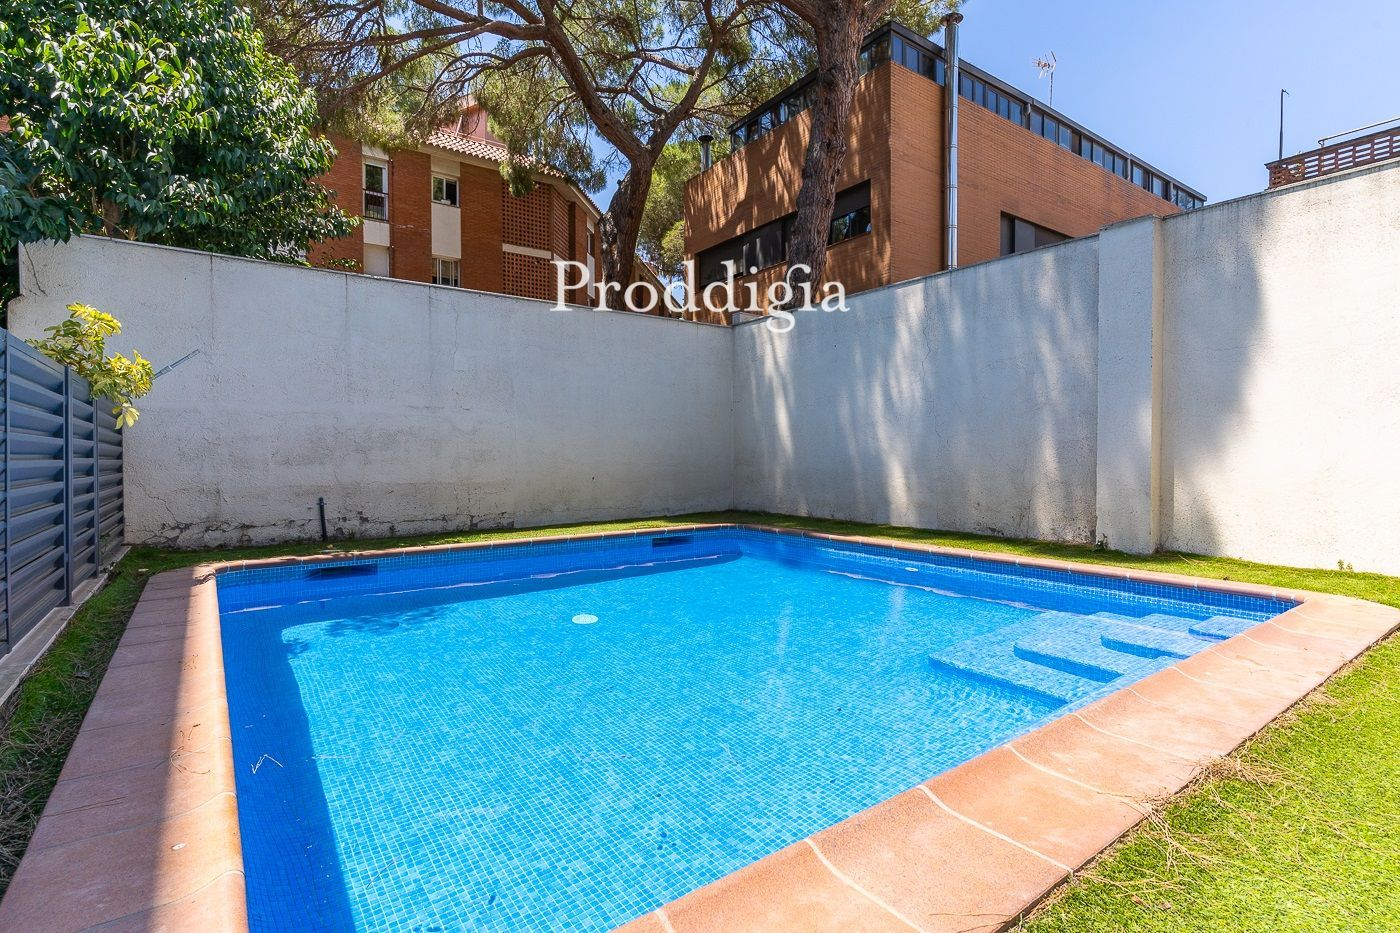 Apartment with 2 bedrooms and communal pool in Eixample